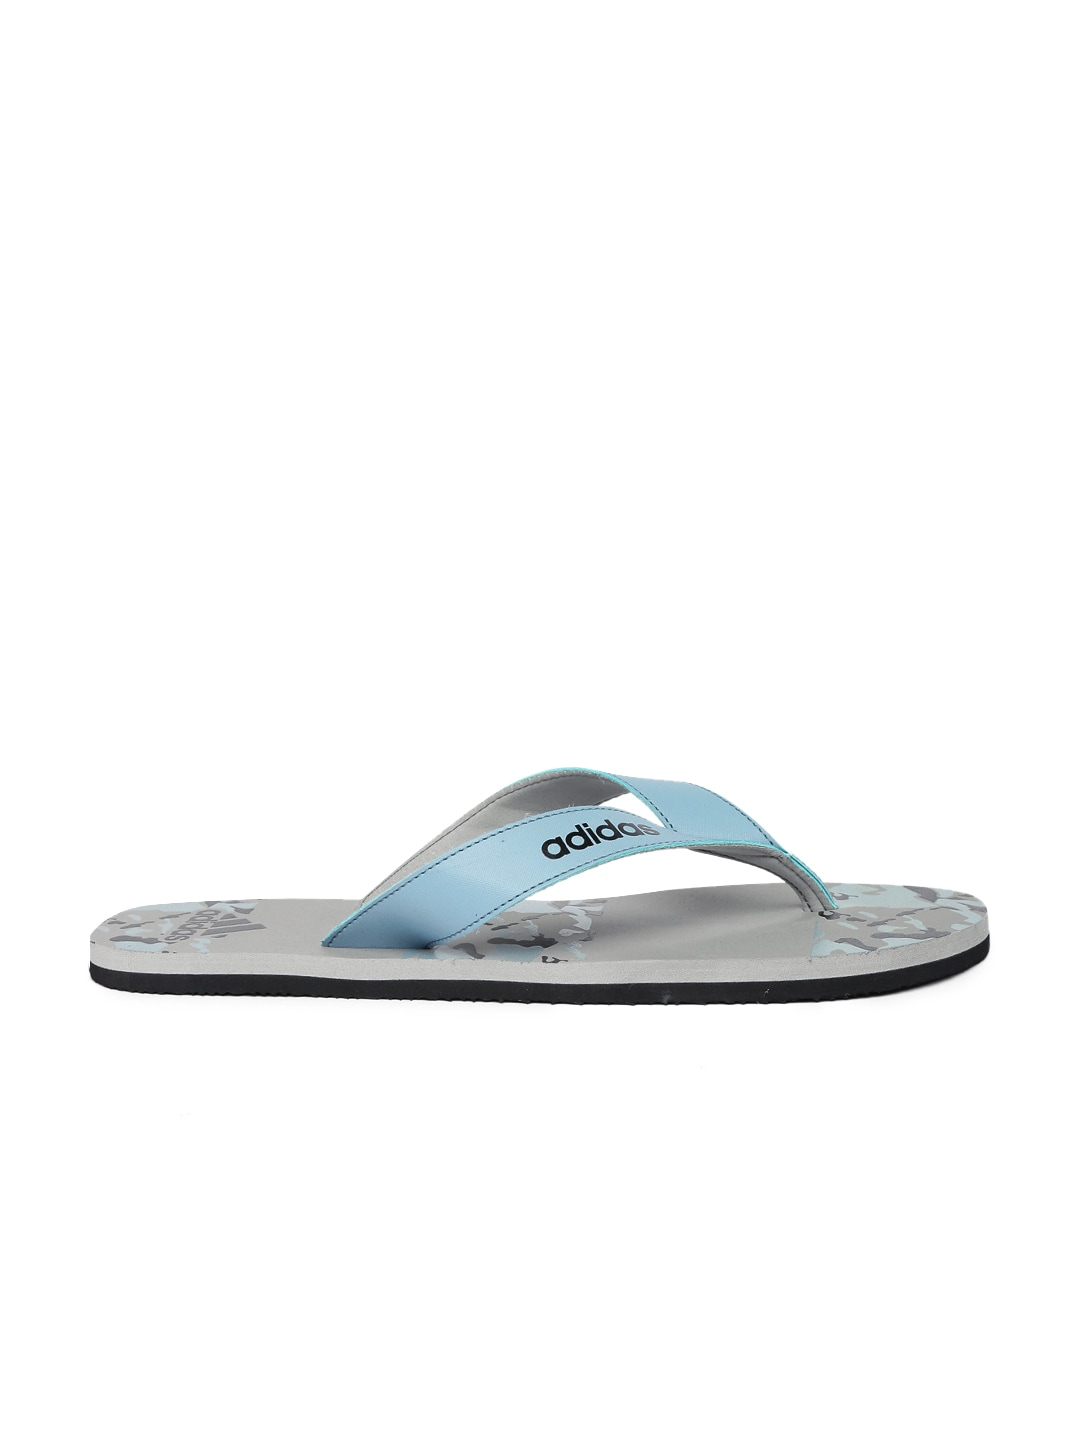 712842f00a03 adidas latest slippers on sale   OFF76% Discounted